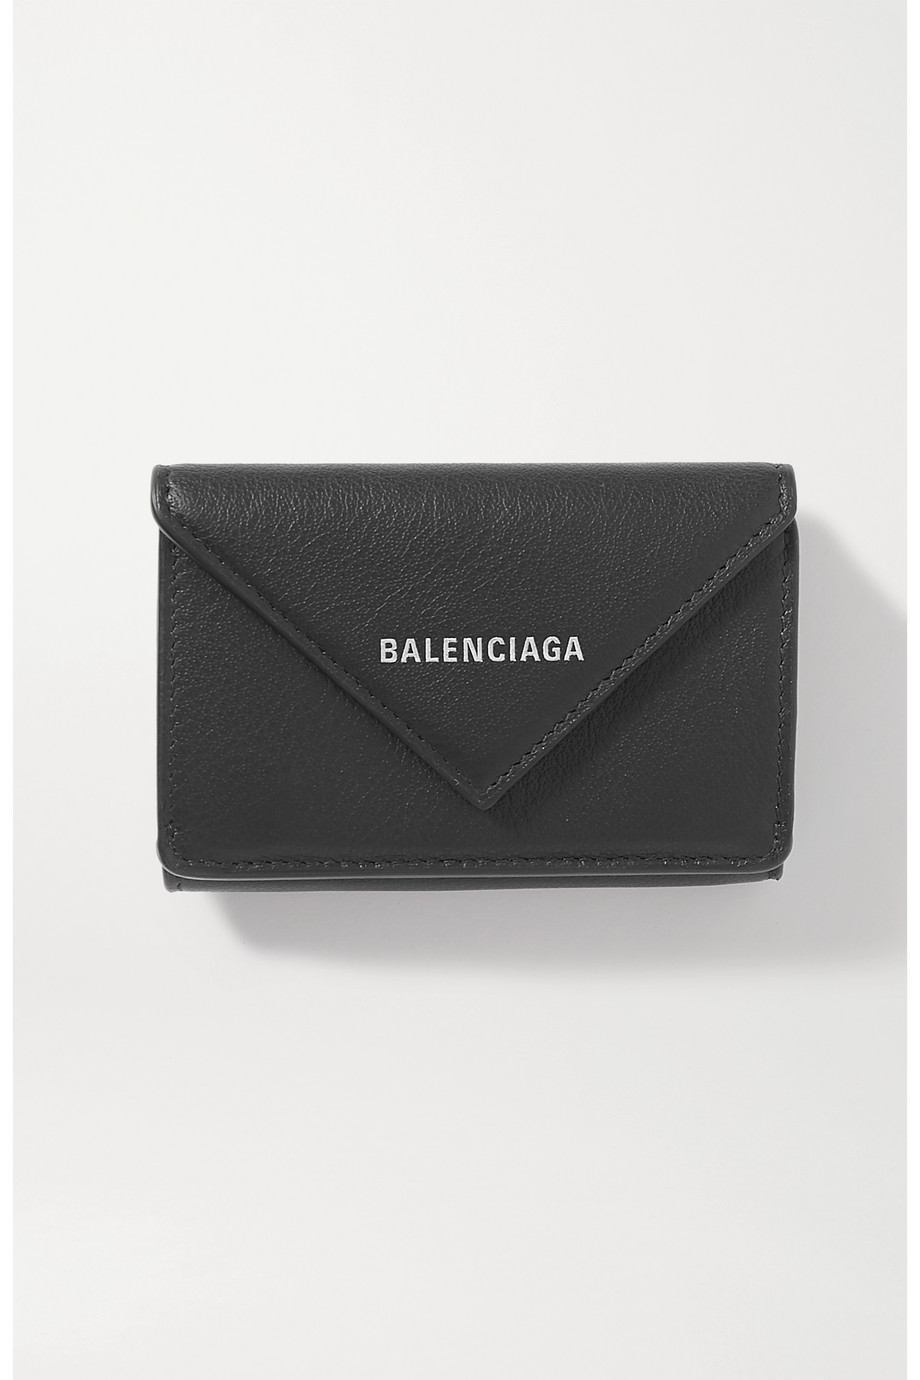 Balenciaga Papier mini printed textured-leather wallet